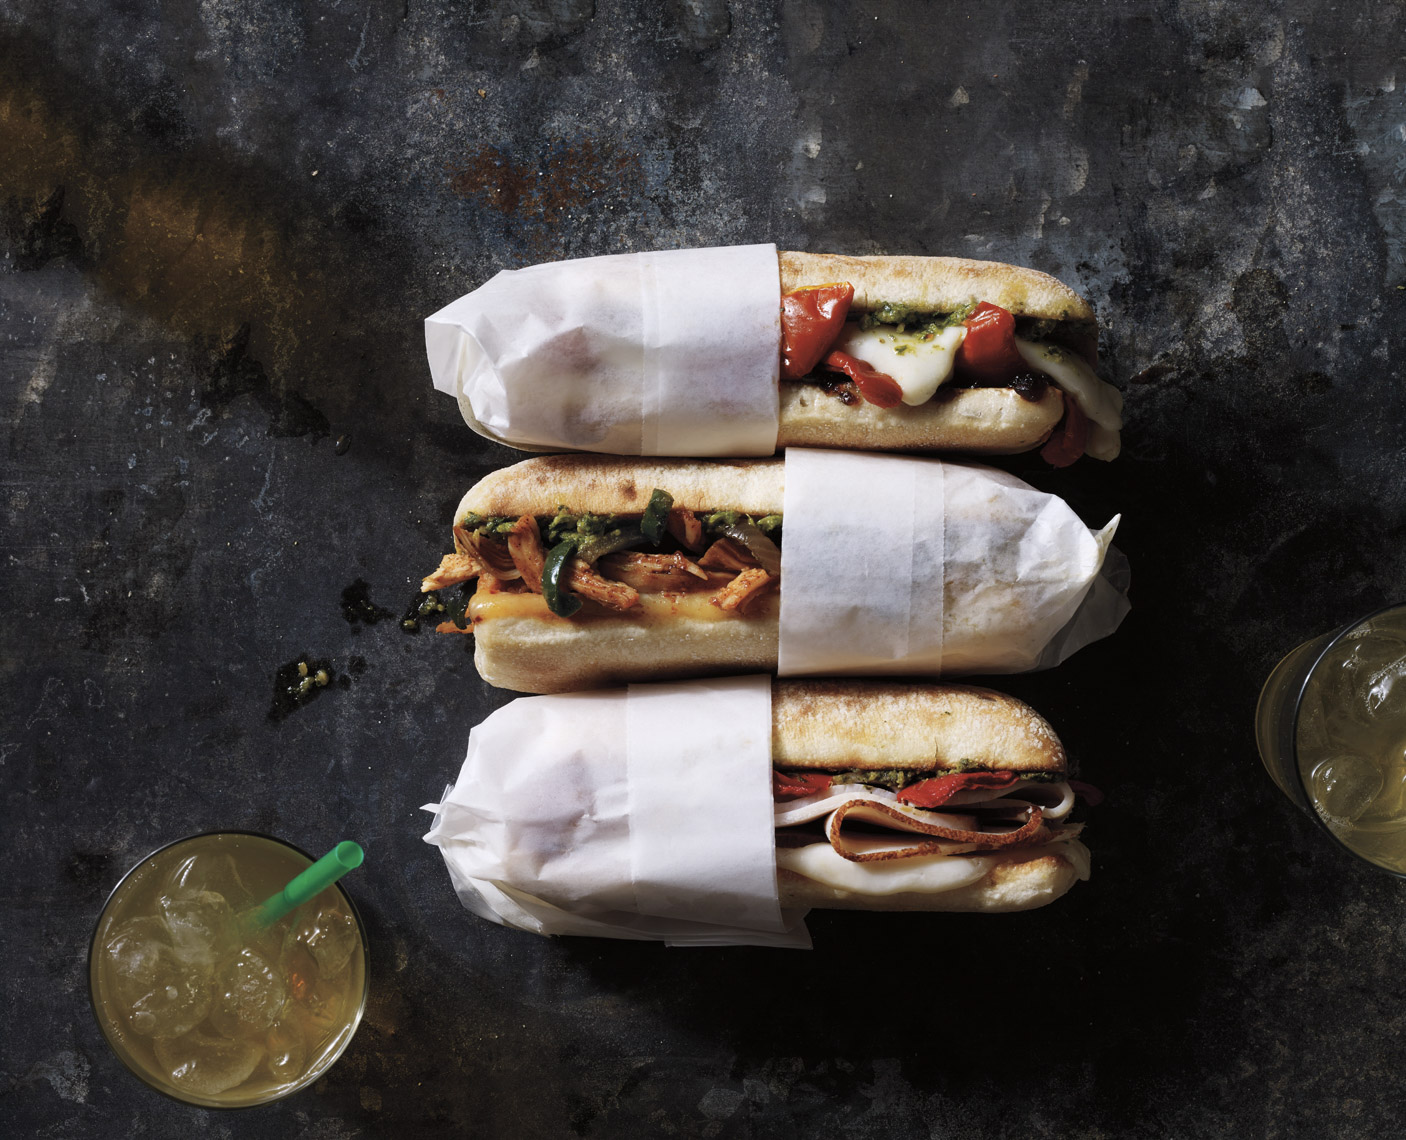 Robyn Valarik San Francisco Based Food & Drink Stylist - Starbucks, pepper, mozzarella, melty, sandwiches, to-go, roll, bun, meat, cheese, vegetables, arugula, wrapped, parchment, stacked, toasted,  food-photography